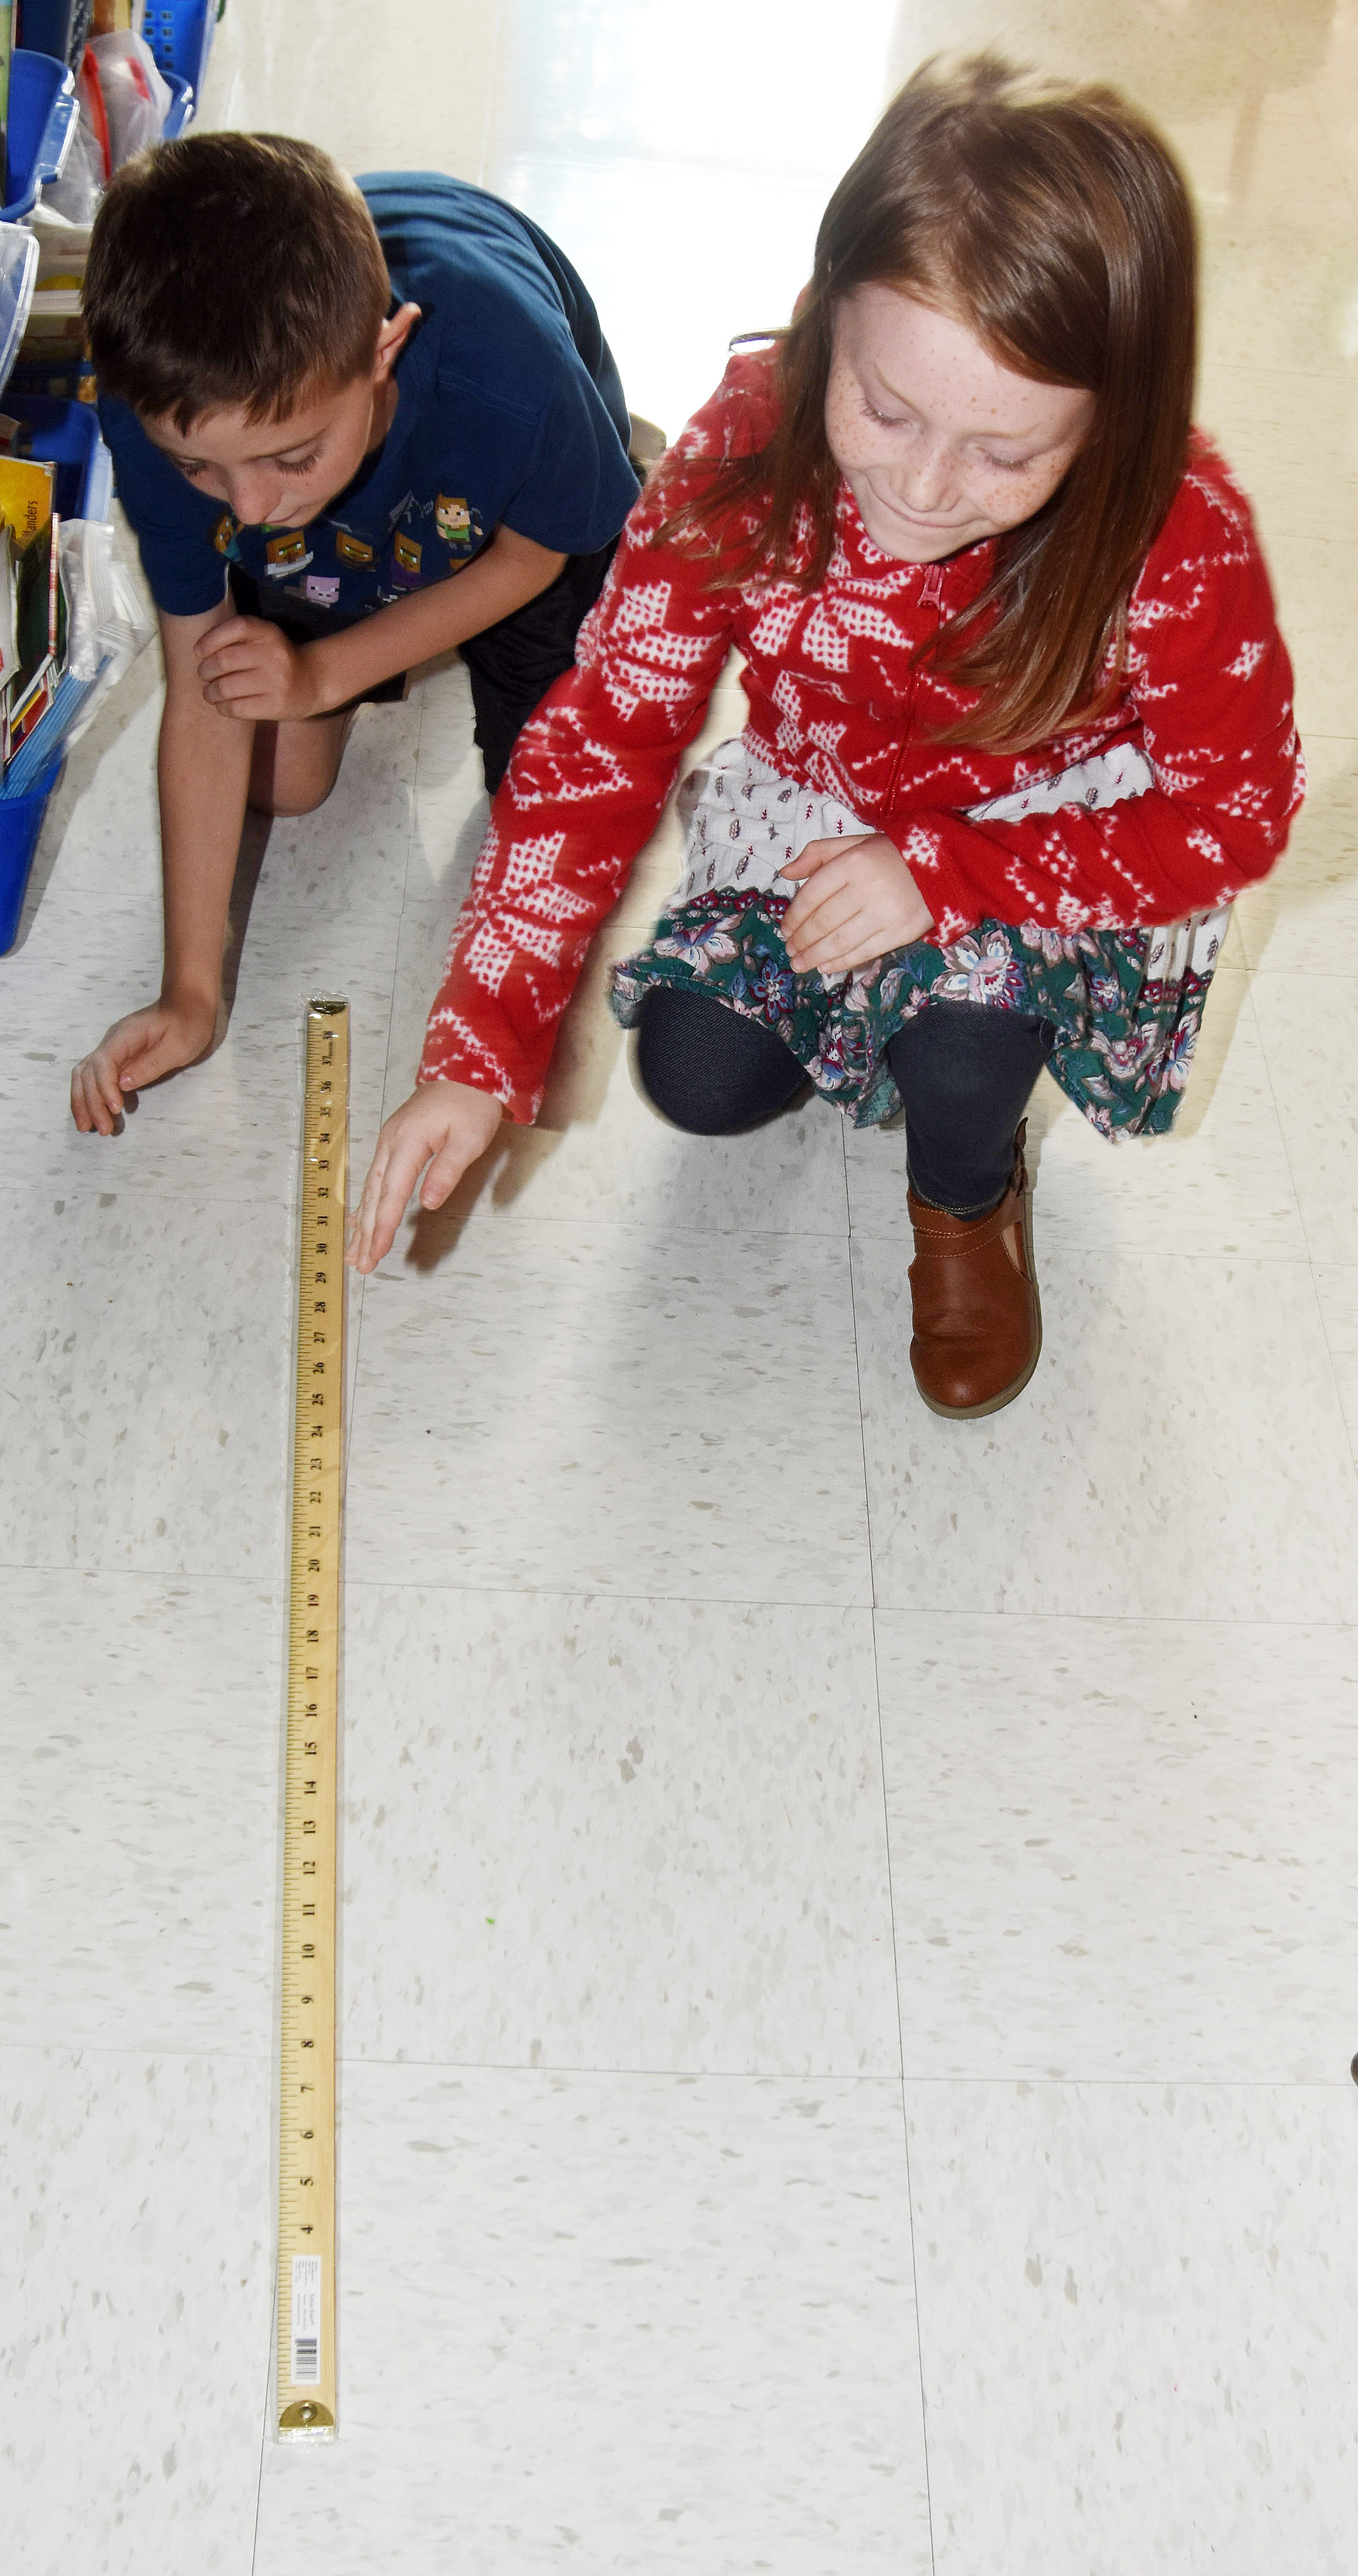 CES second-graders Caleb Goodson, at left, and Emma Humphress practice measuring.